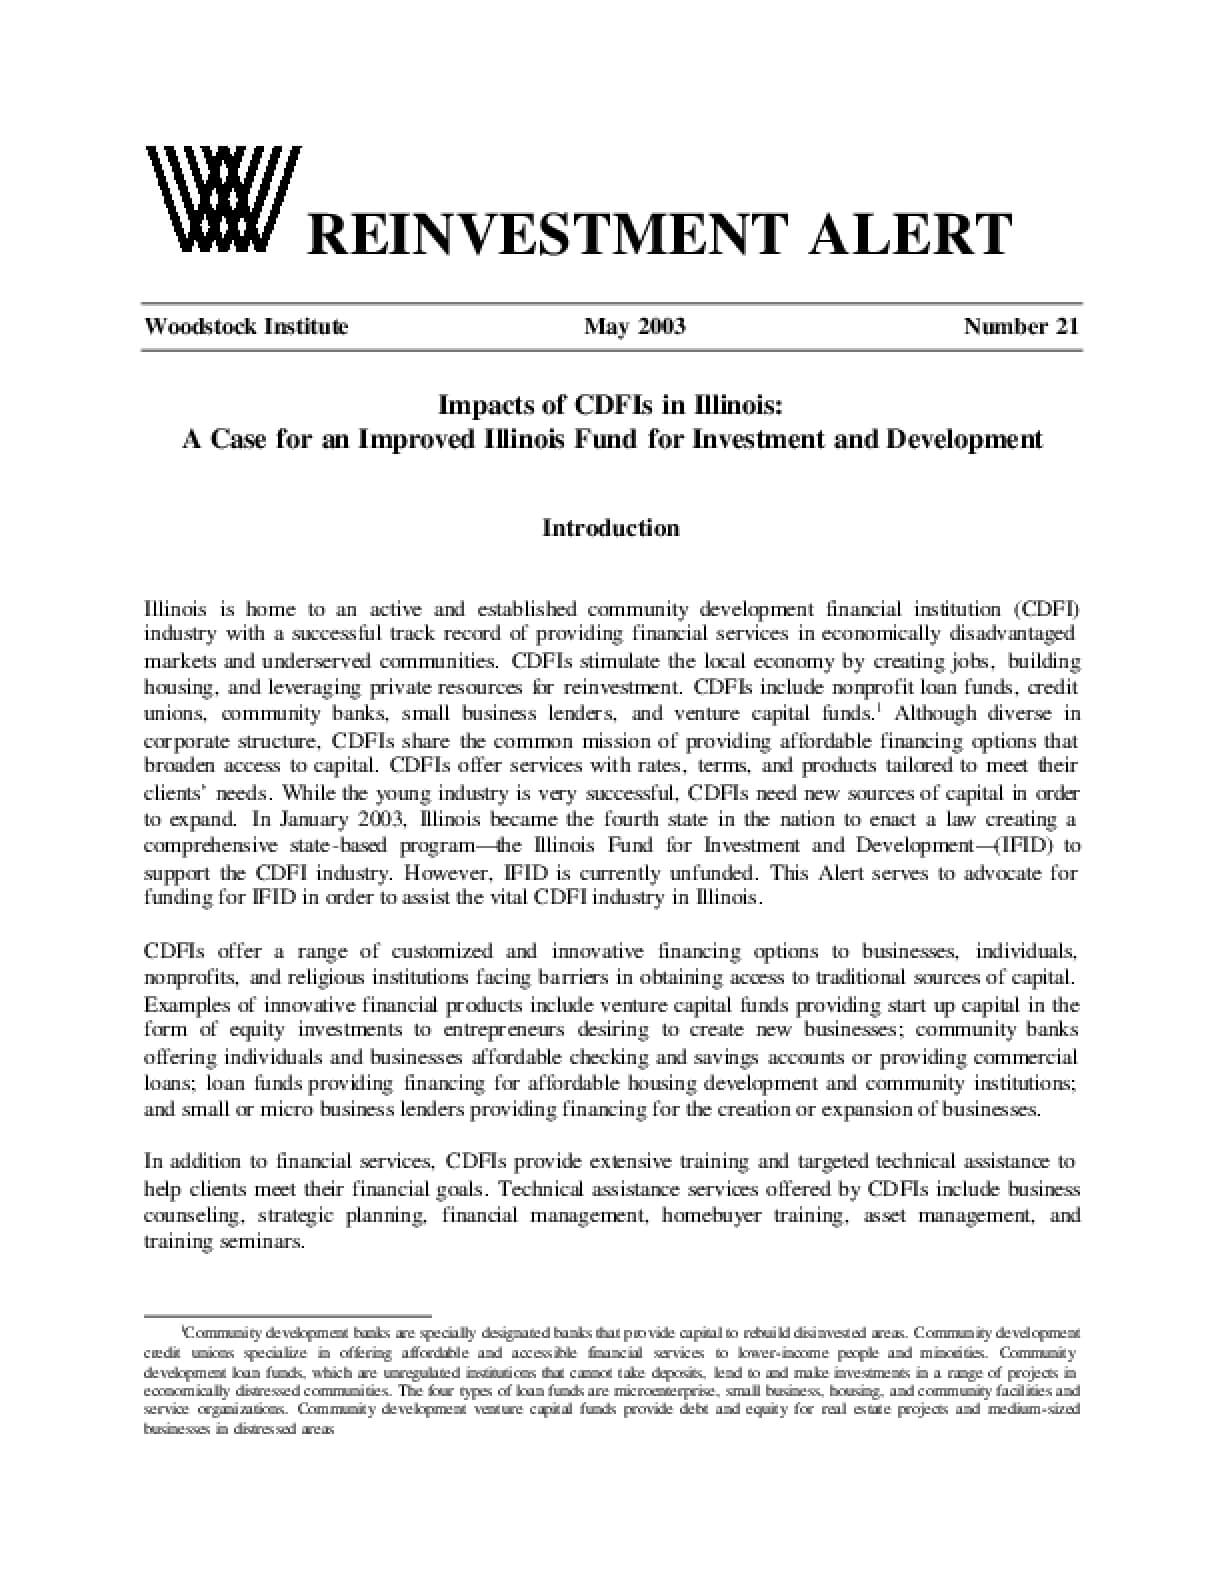 Reinvestment Alert 21: Impacts of CDFIs in Illinois: A Case for an